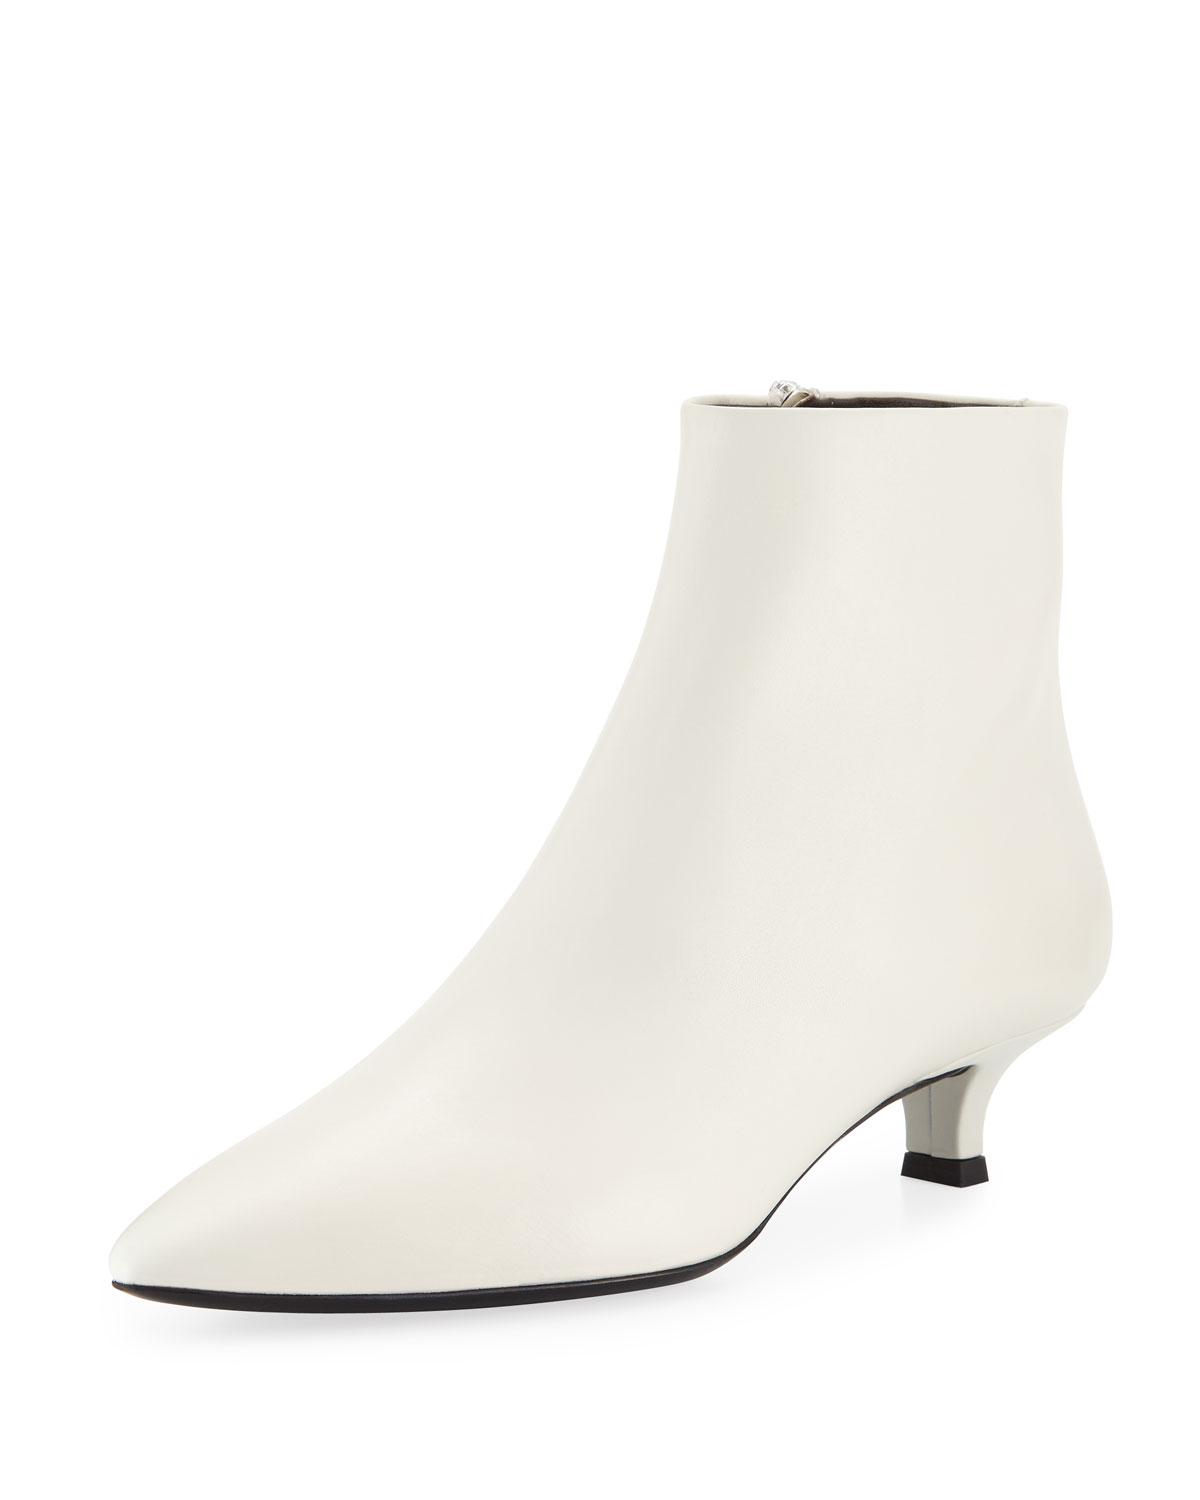 COCO POINTED-TOE BOOTIES